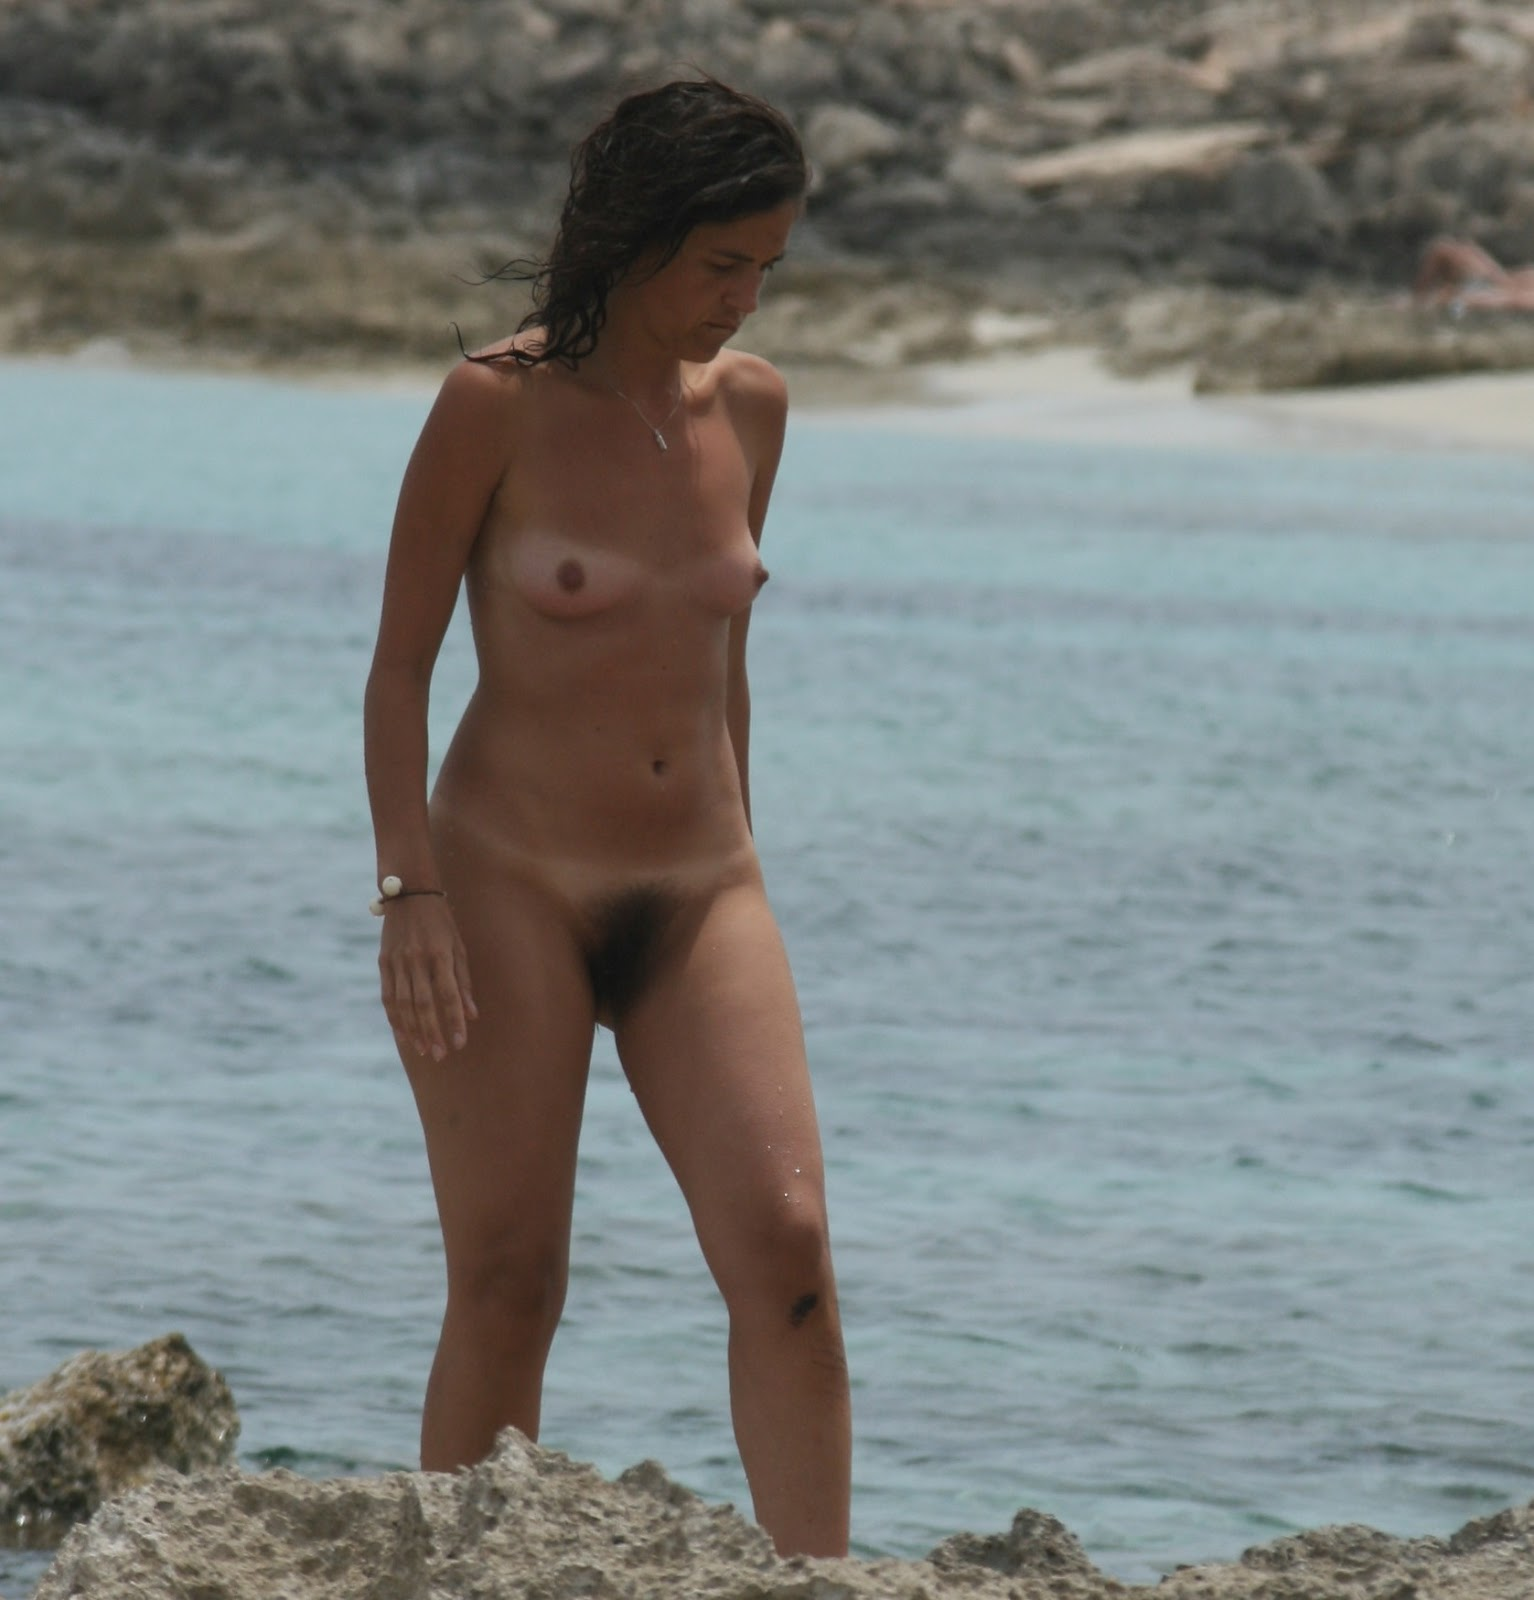 Amusing phrase Nude beaches of spain you cannot